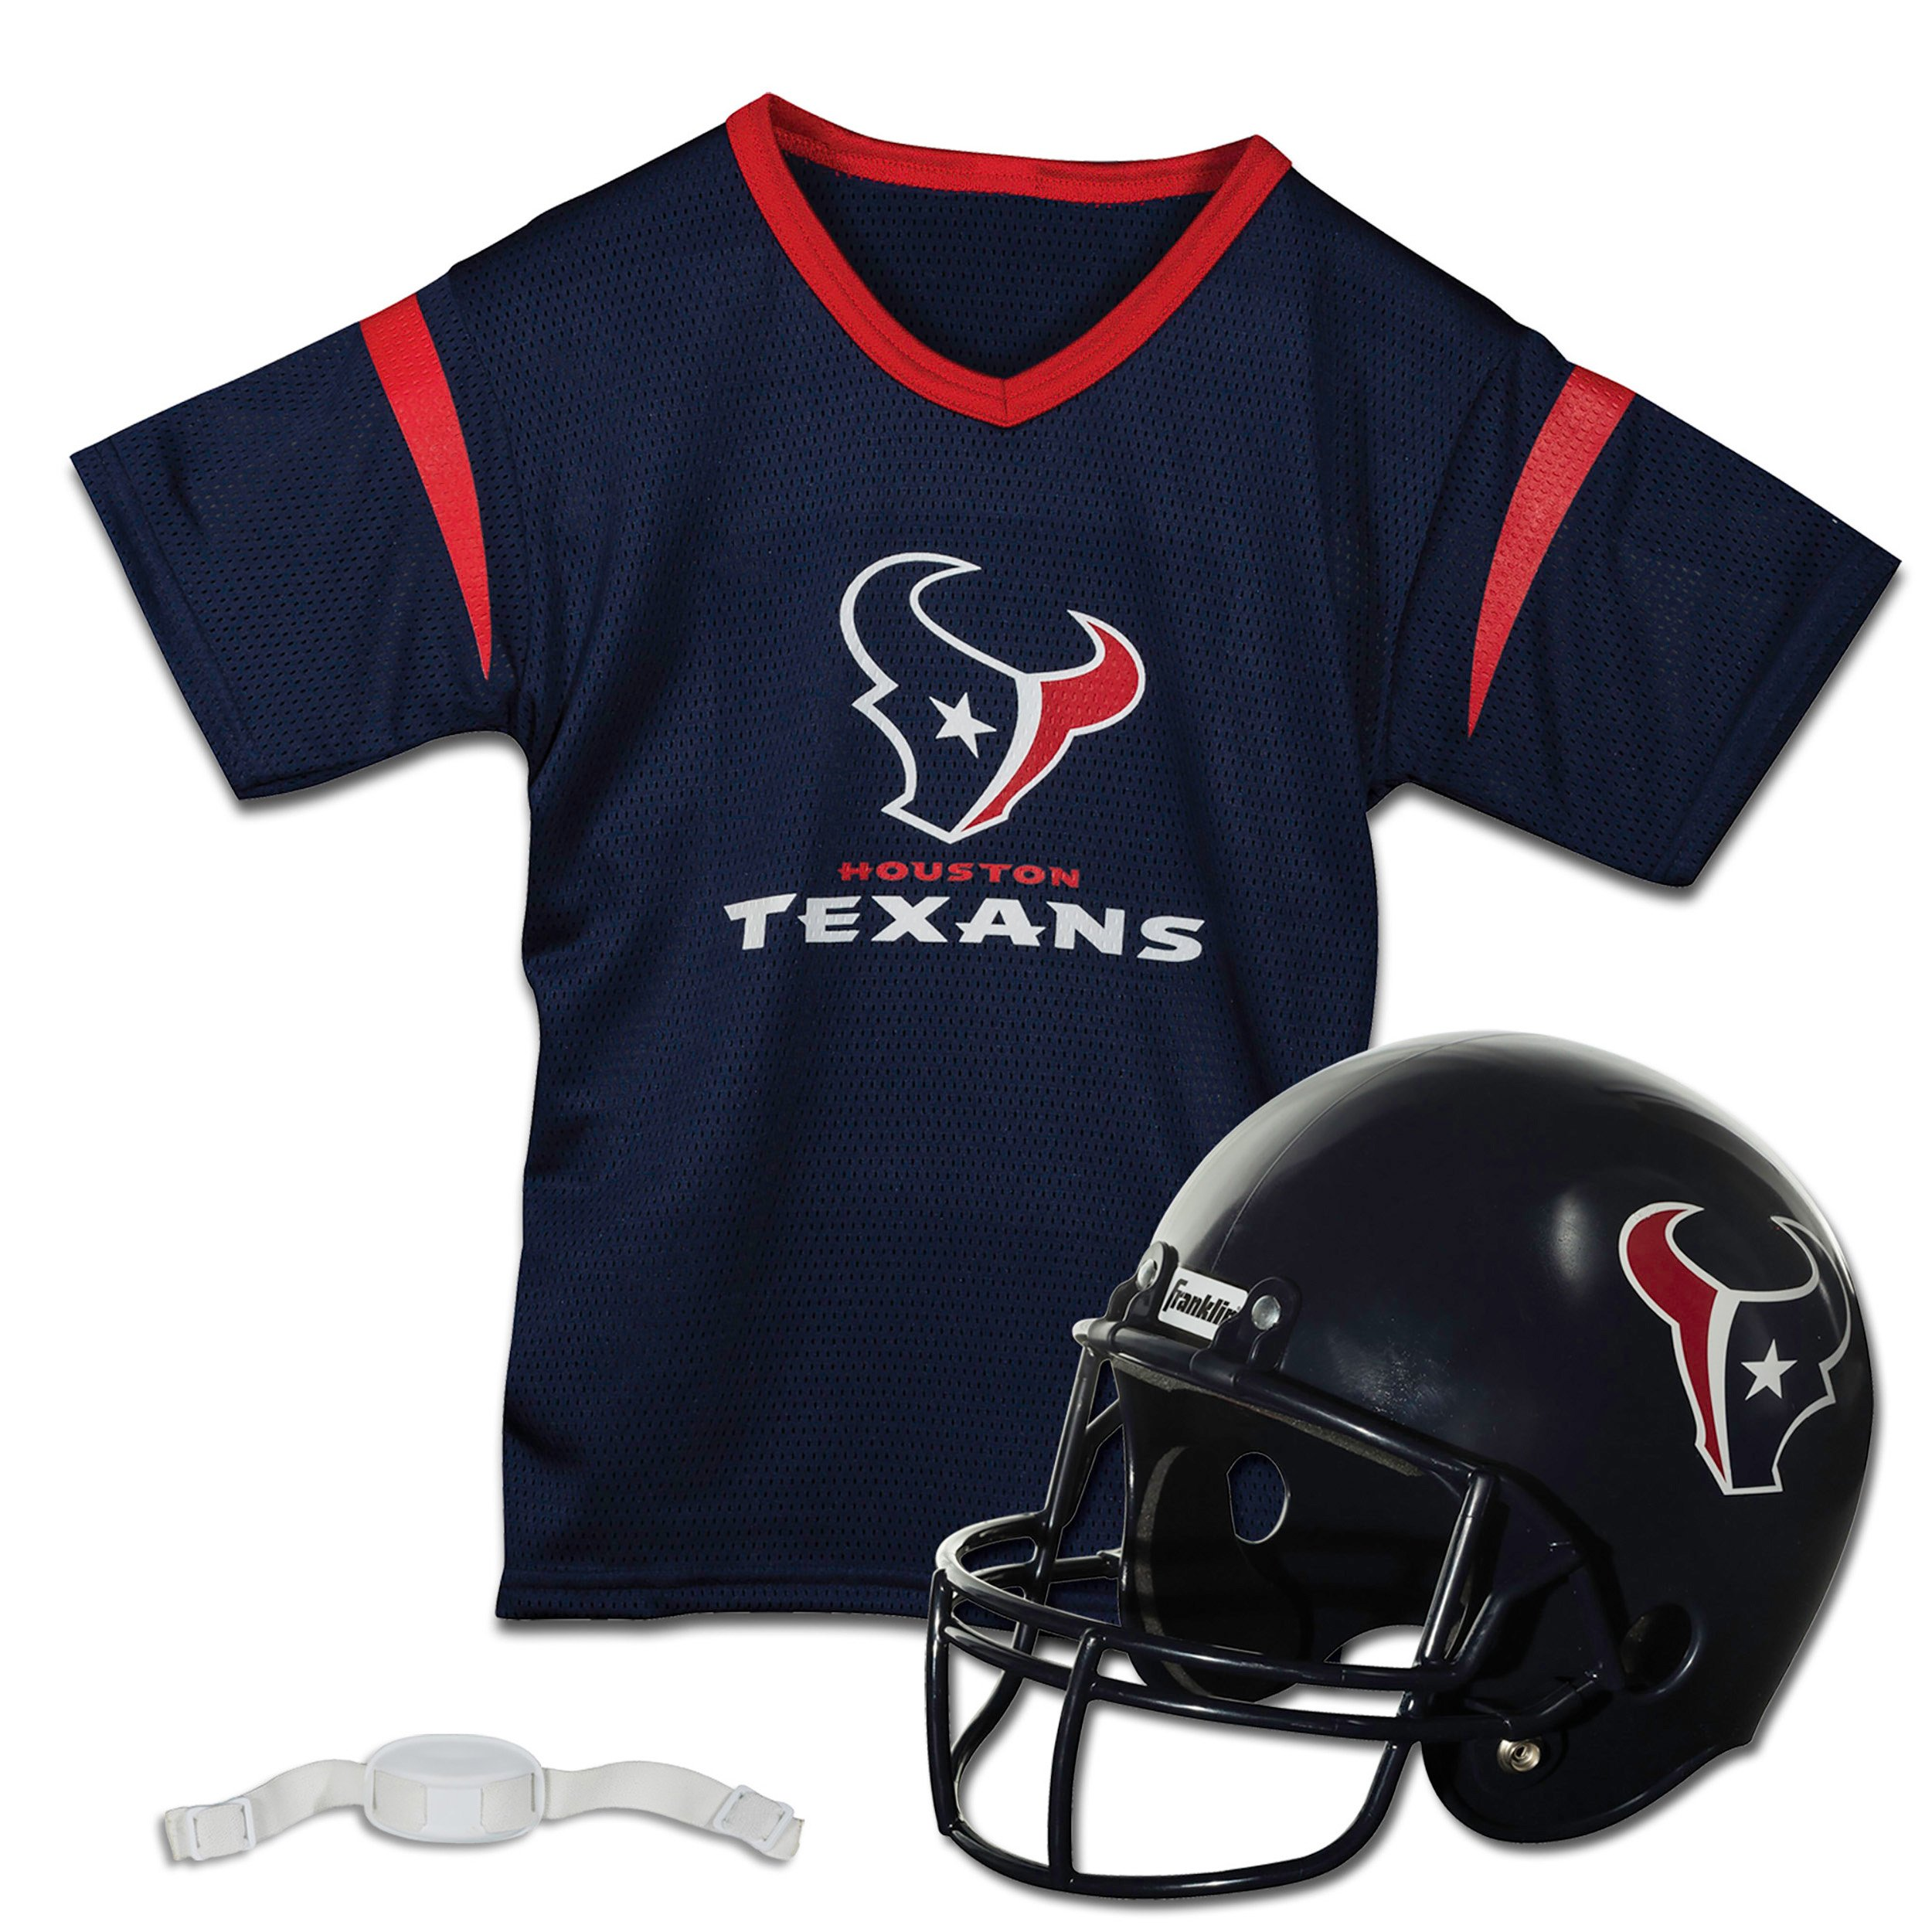 Franklin Sports NFL Houston Texans Replica Youth Helmet and Jersey Set by Franklin Sports